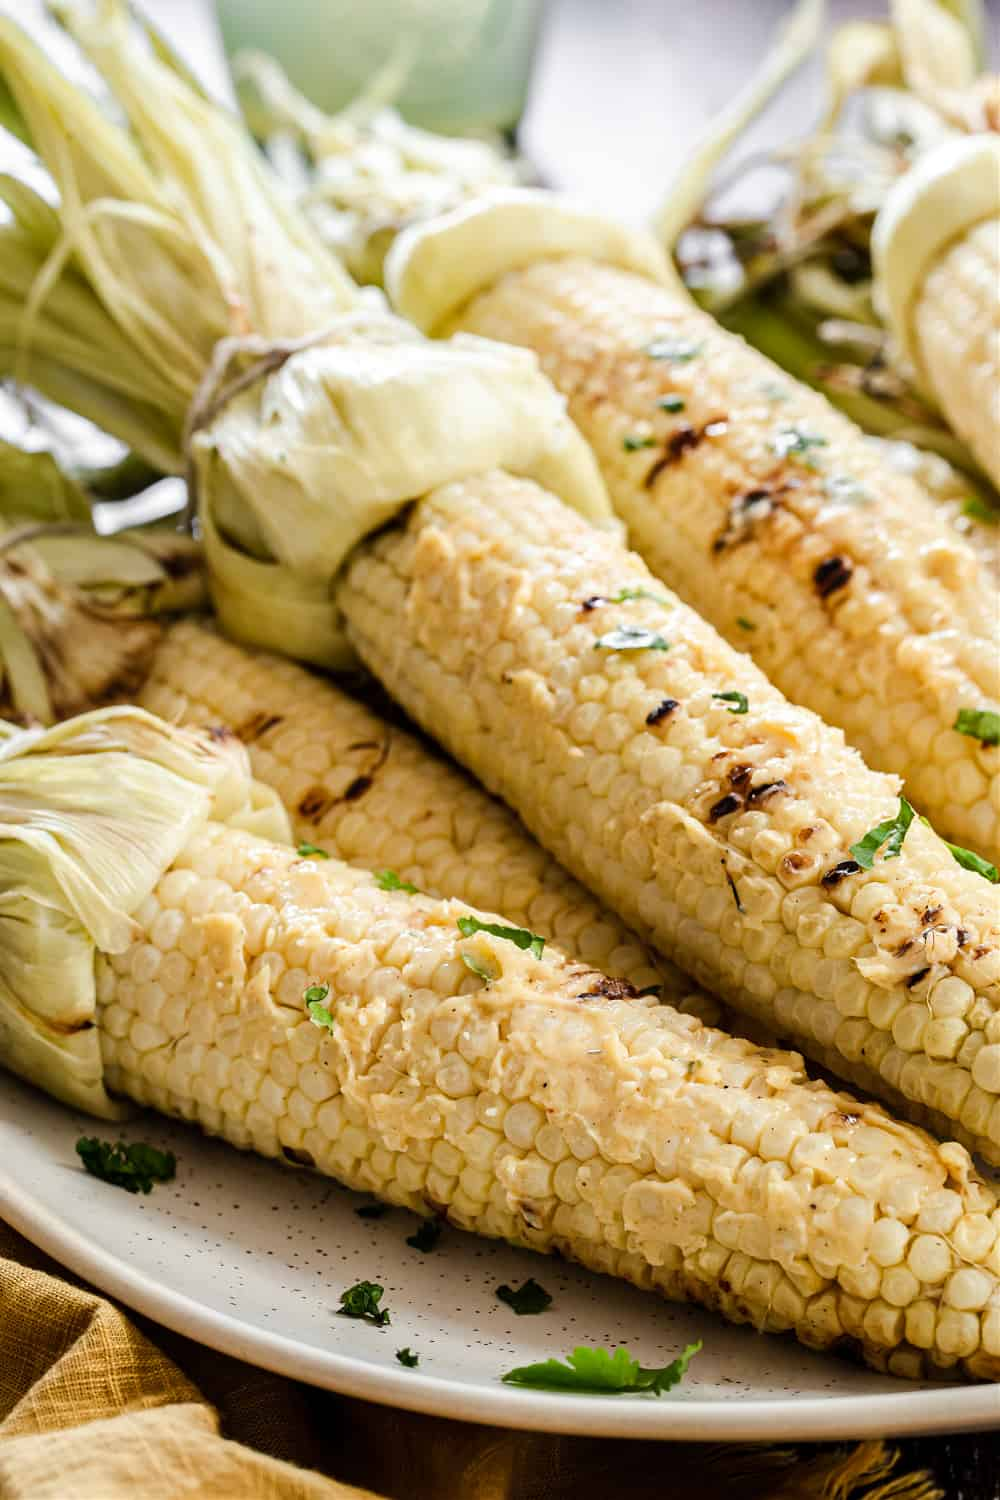 grilled corn on the cop with husks attached, slathered in butter